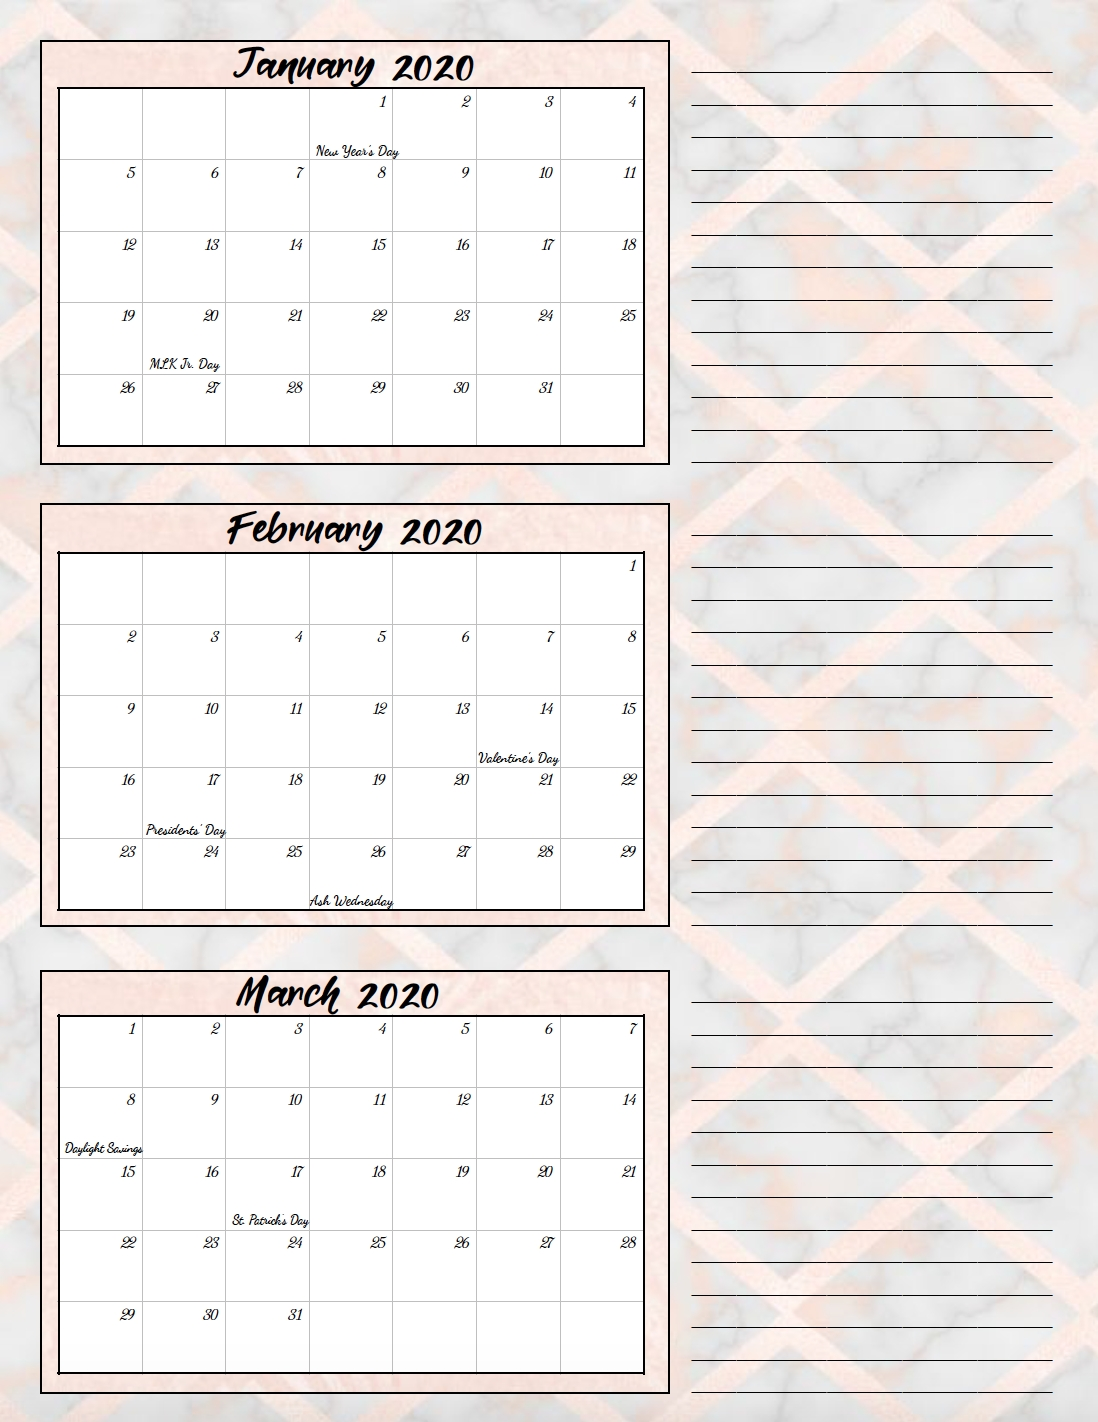 Free Printable 2020 Quarterly Calendars With Holidays: 3 for 2020 Printable Quarterly Calendar Template